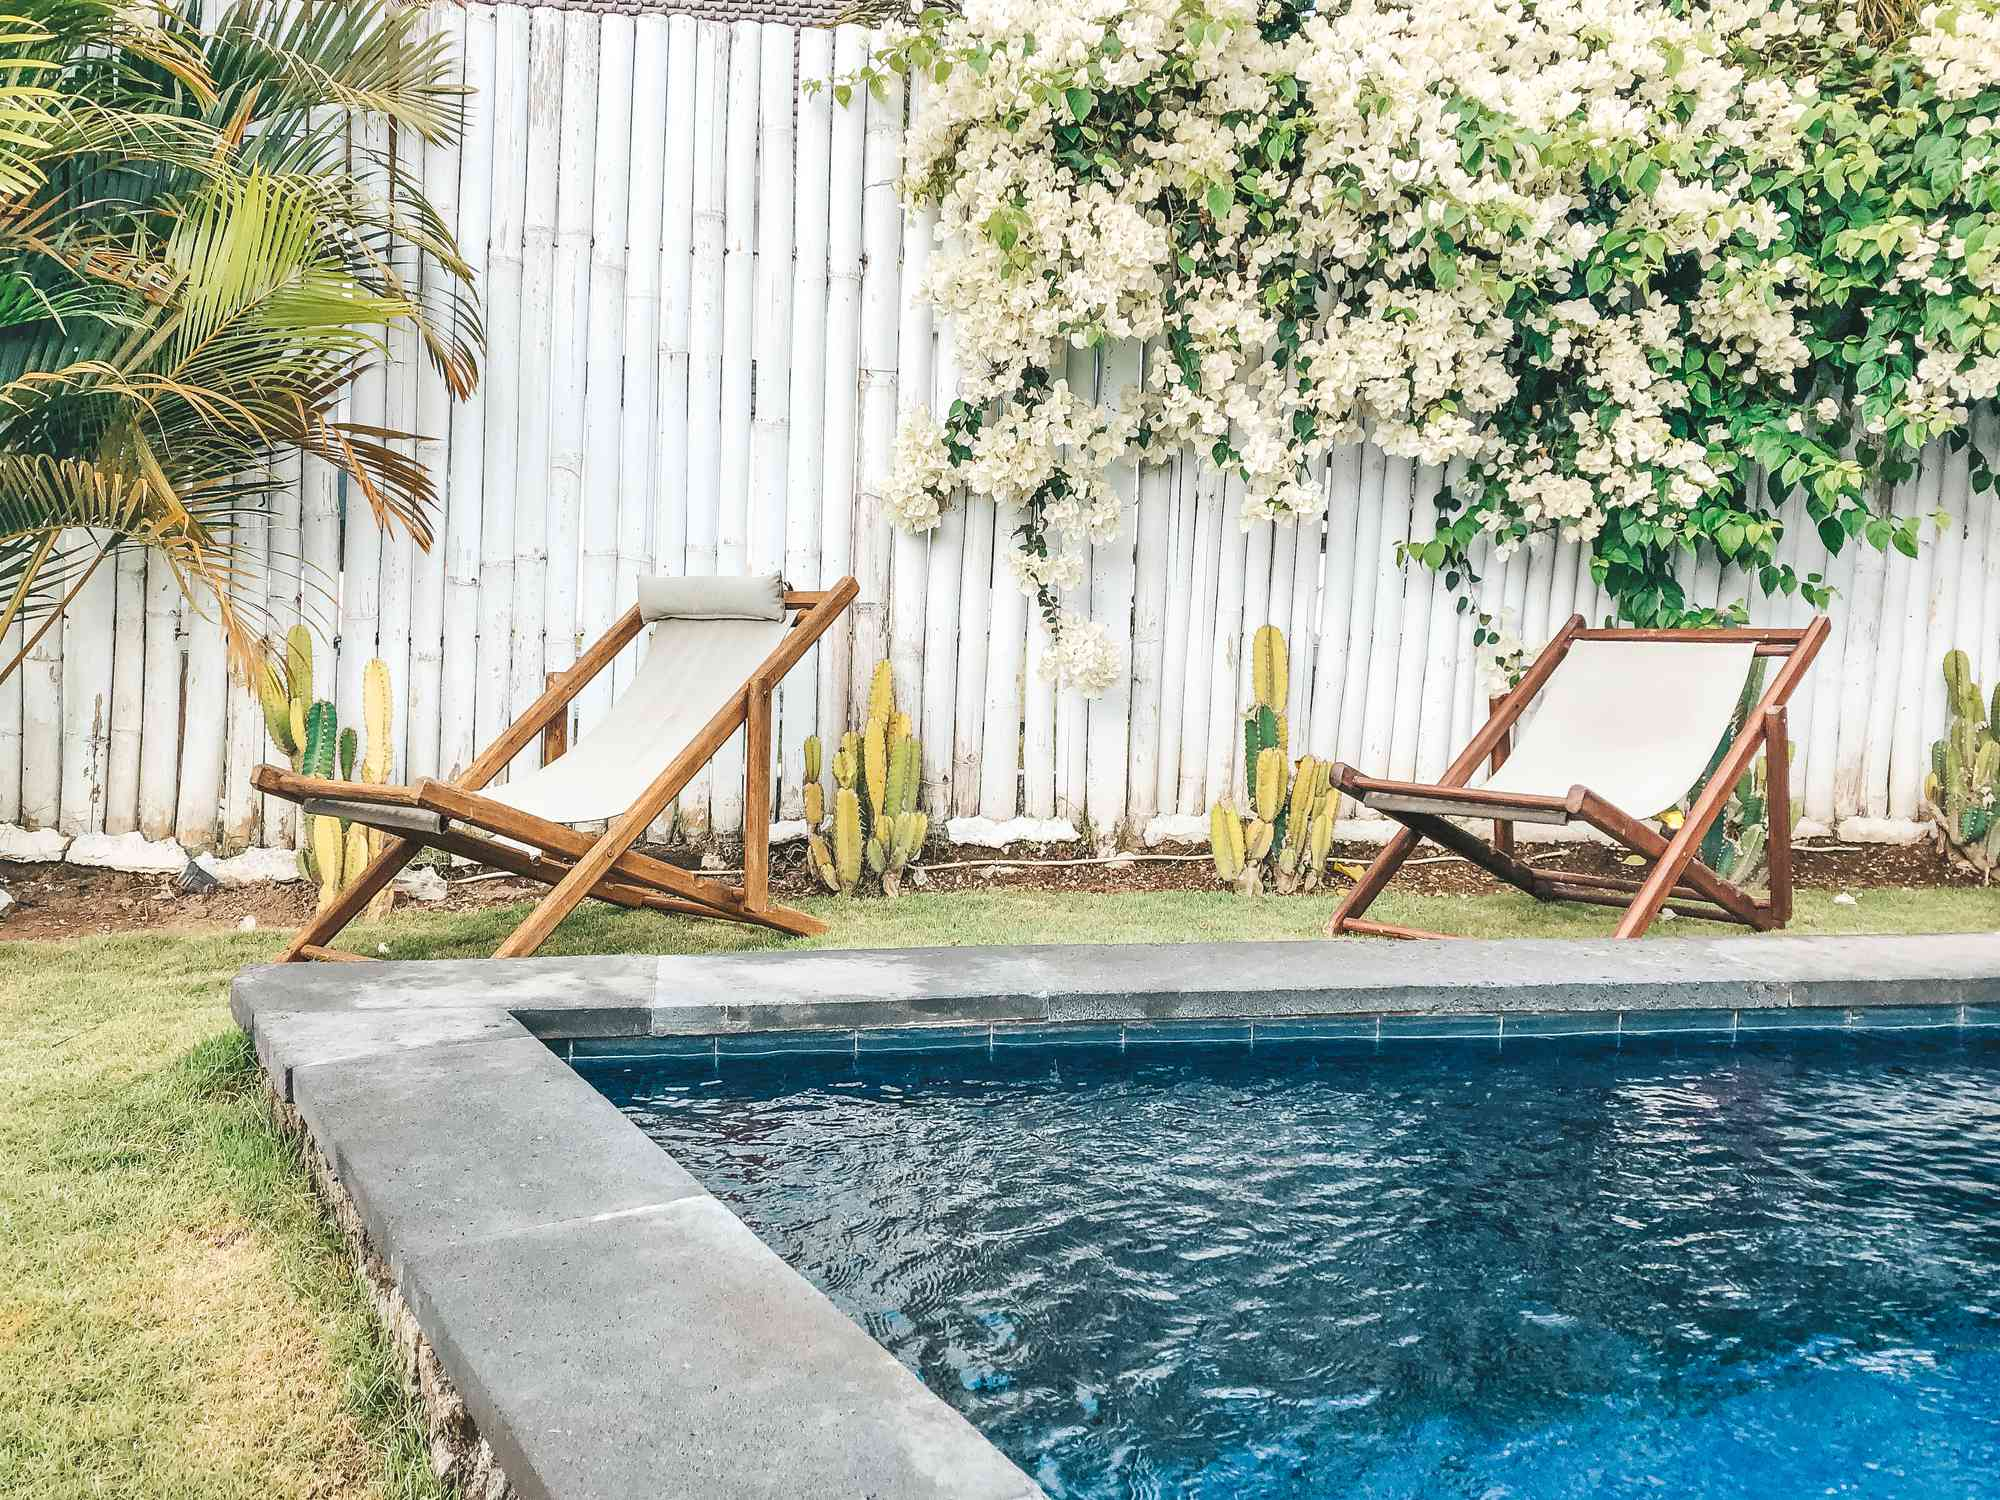 A backyard pool surrounded by a white bamboo fence and lounge chairs.